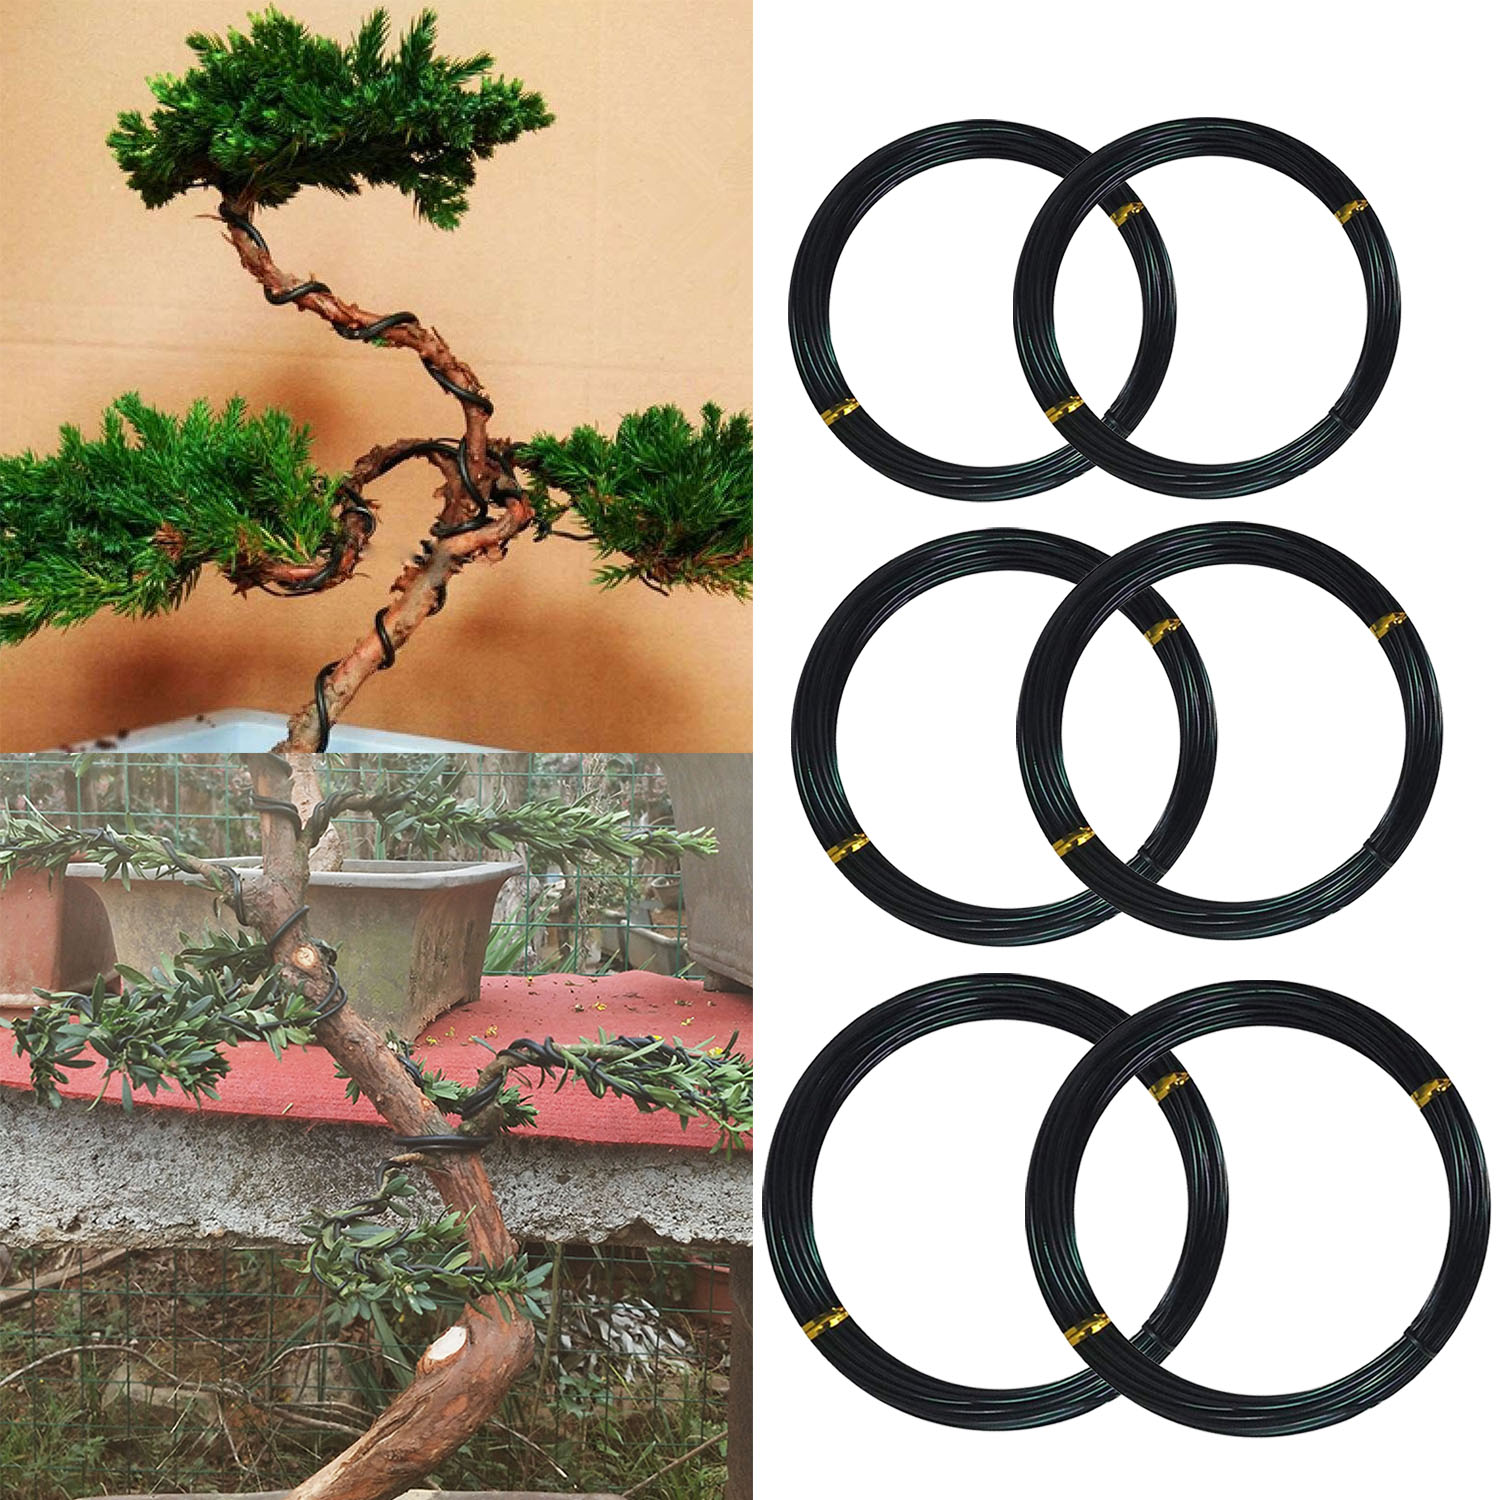 6 Roll 5m Aluminum Trees Training Wires Garden Bonsai Beginners Trainers Artists Plants Trees Training Wire 1mm/1.5mm/2mm Black